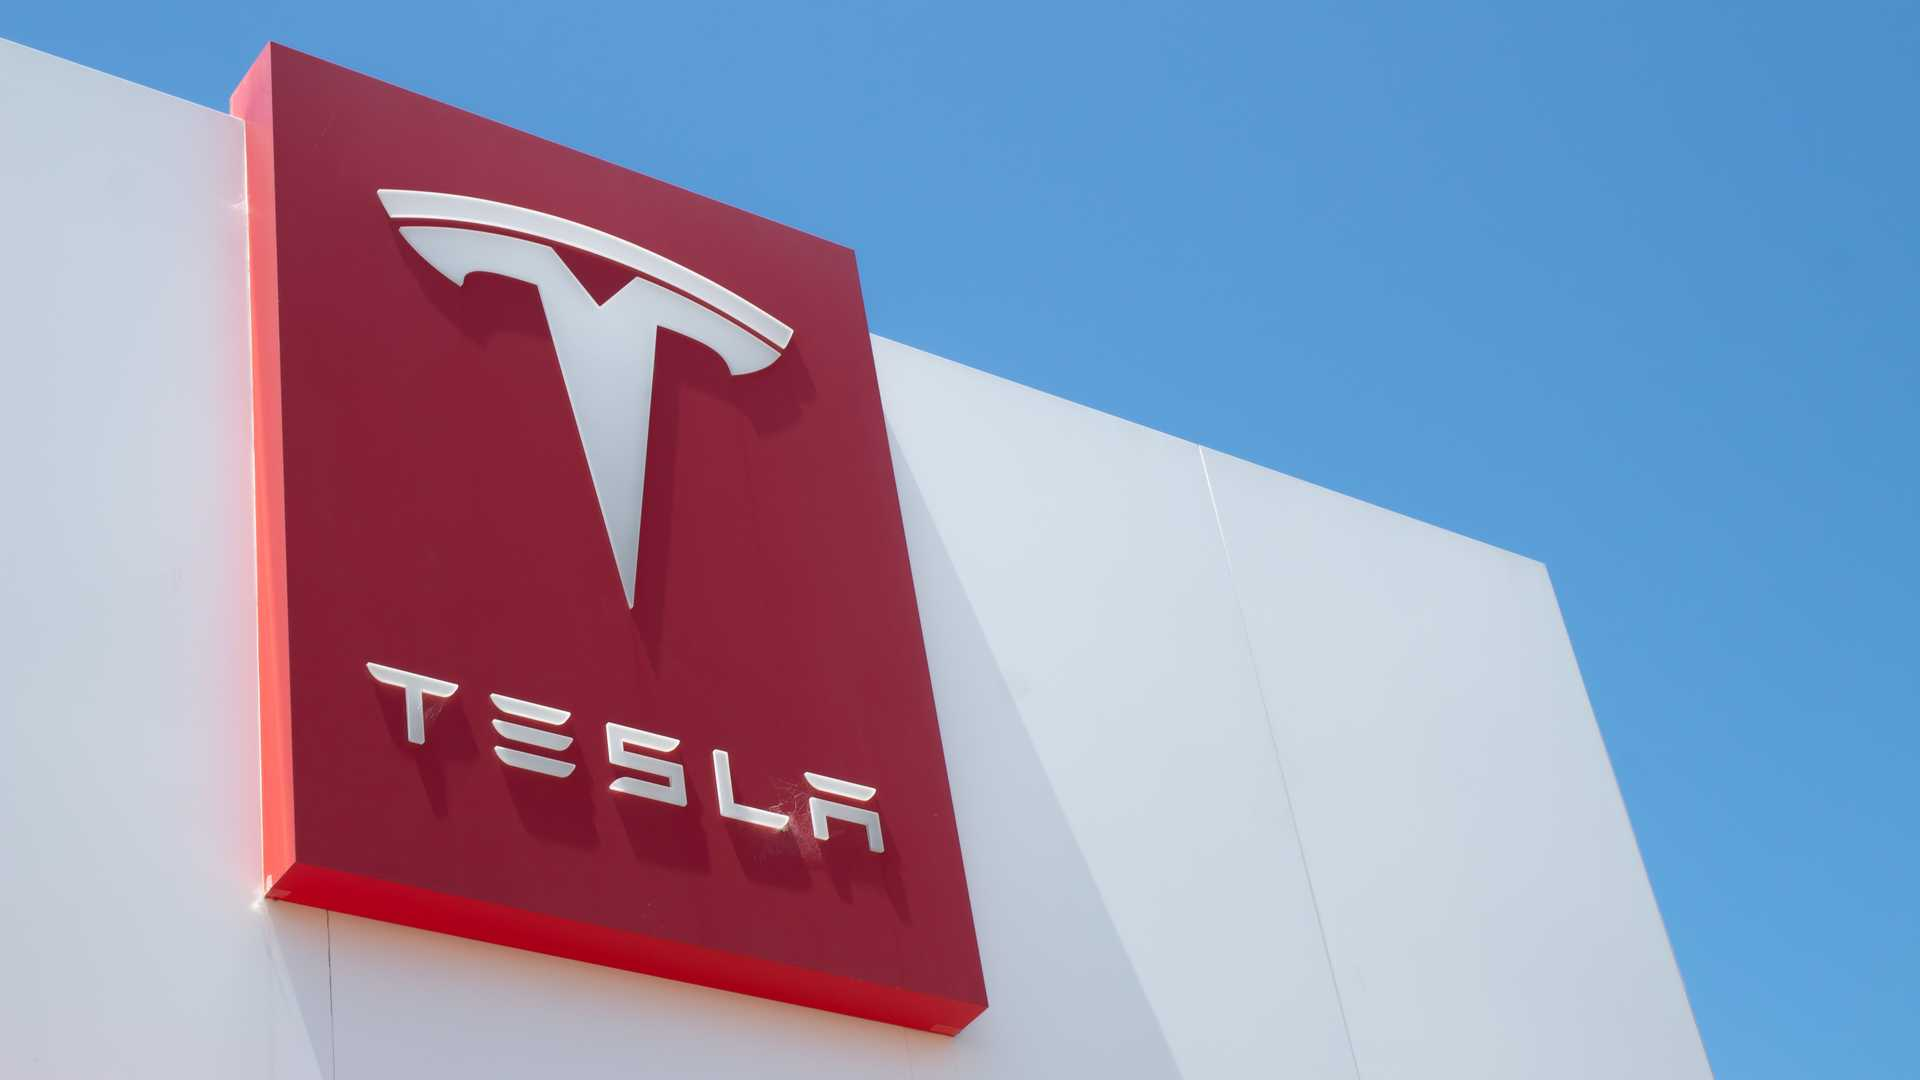 Tesla tipped for strong Q2 with China demand looking strong